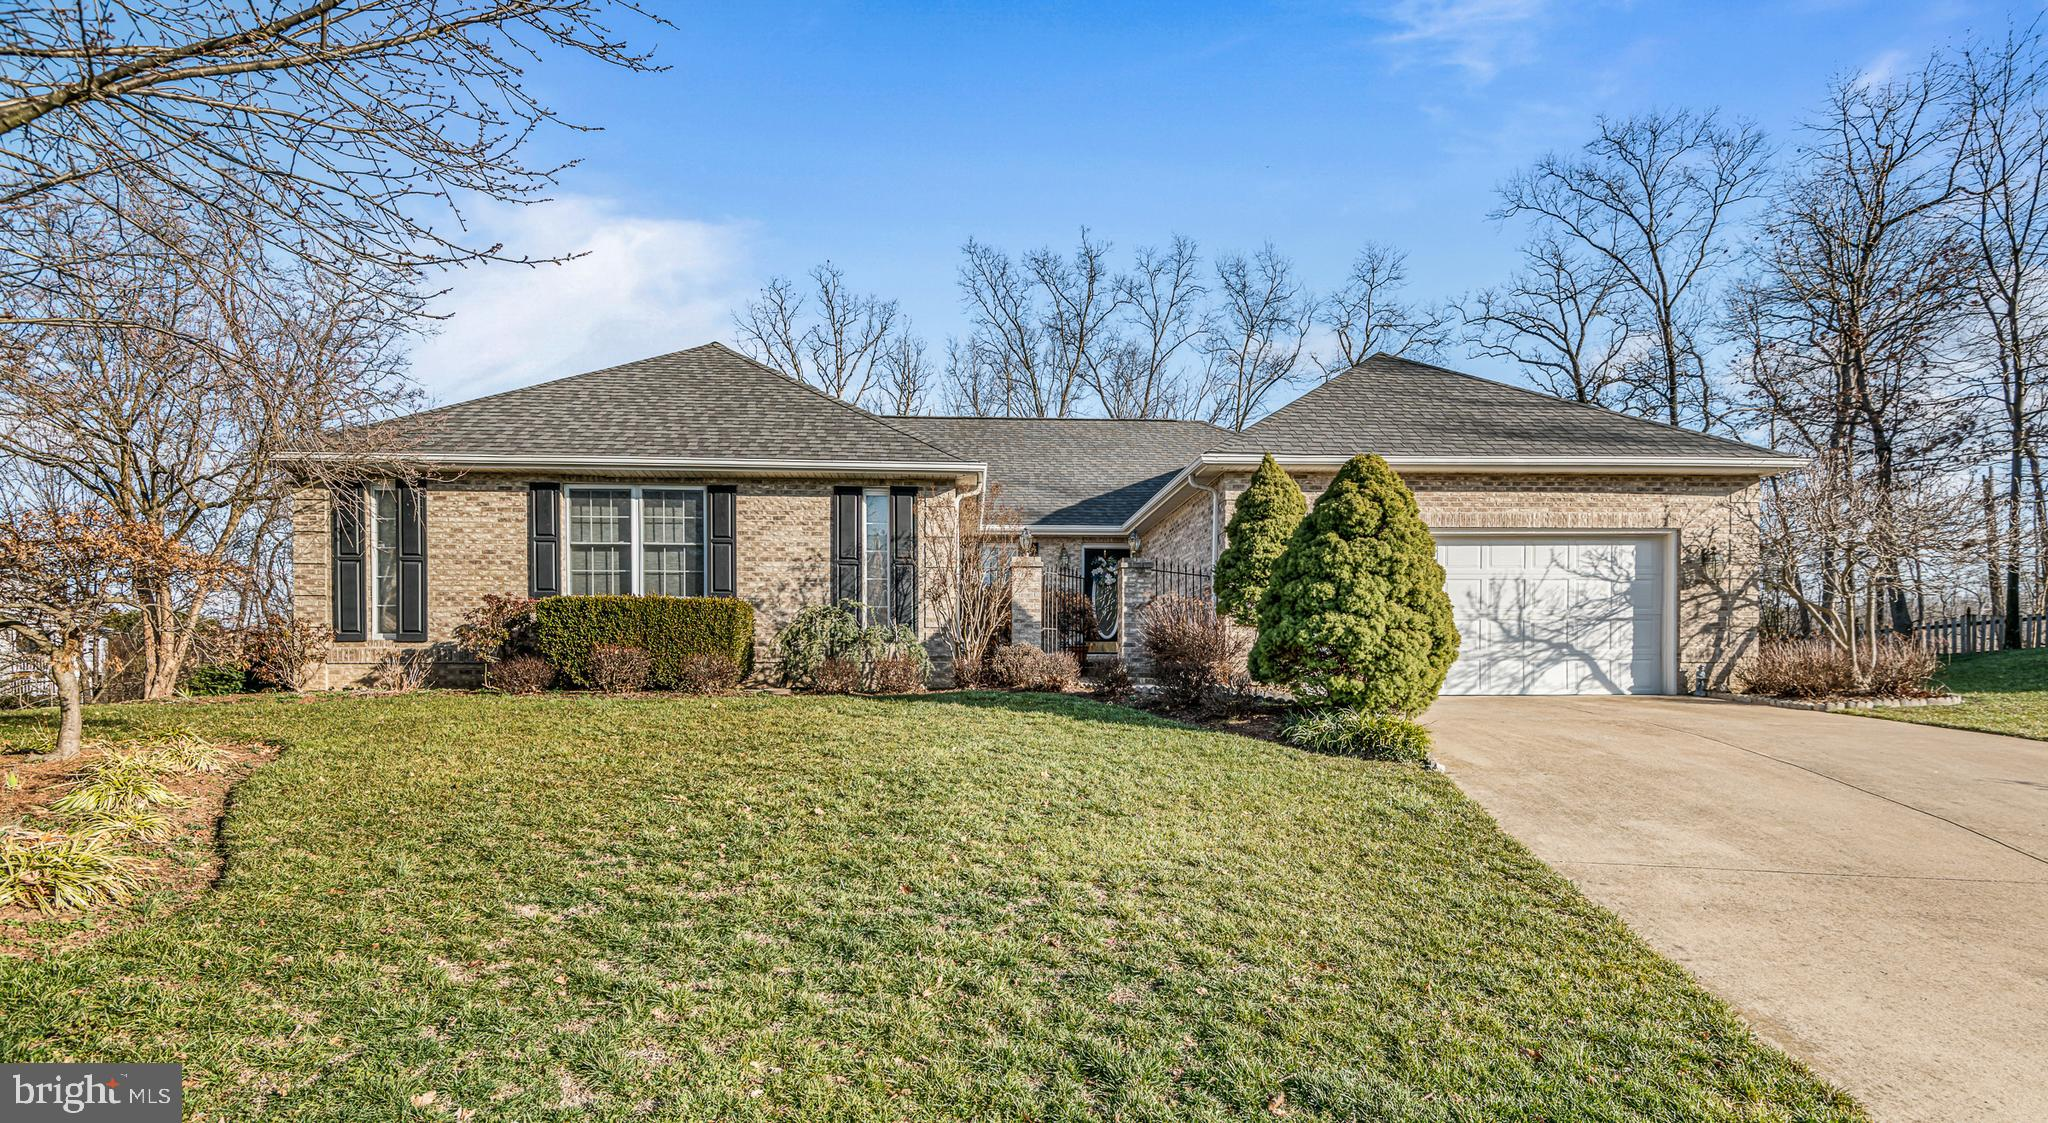 This spacious home features main level living with a fully finished basement with tons of storage.  2019 Upgrades include - New Roof, New Hardwood Floors on Main Level, New Refrigerator, New Upgraded Gas Cooktop, New Shower in Master Bath, Fresh Paint on Main Level, New  Carpet in Basement.  Other features of the home include Gourmet Kitchen, Large Sunroom off of Kitchen area, Skylights, Irrigation System, Deck off of Main Living Area and Patio on Lower Level Walk-out, Extensive Landscaping, Water Softner.  Rough-in for additional Kitchen in Basement.  One area of the basement is currently furnished as a salon.